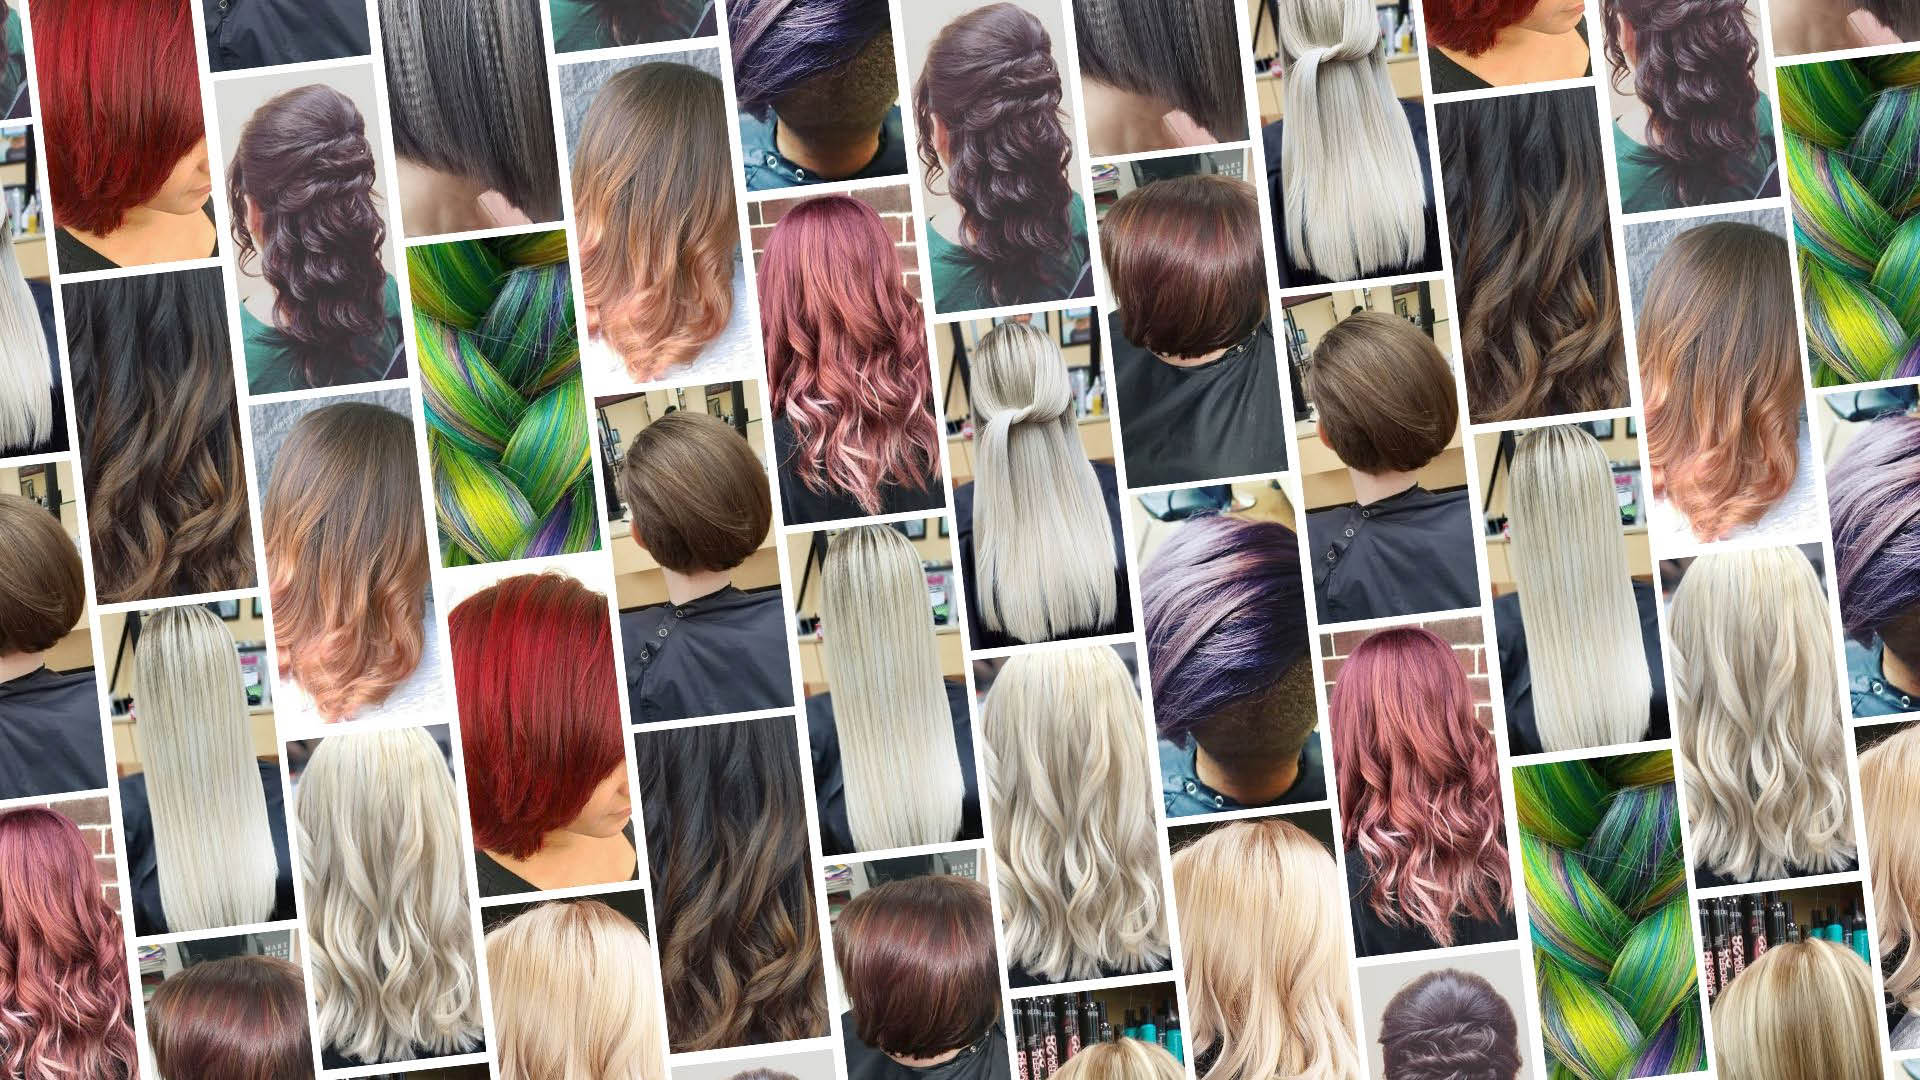 Smartstyle Hair Salon In Hackettstown Nj Local Coupons November